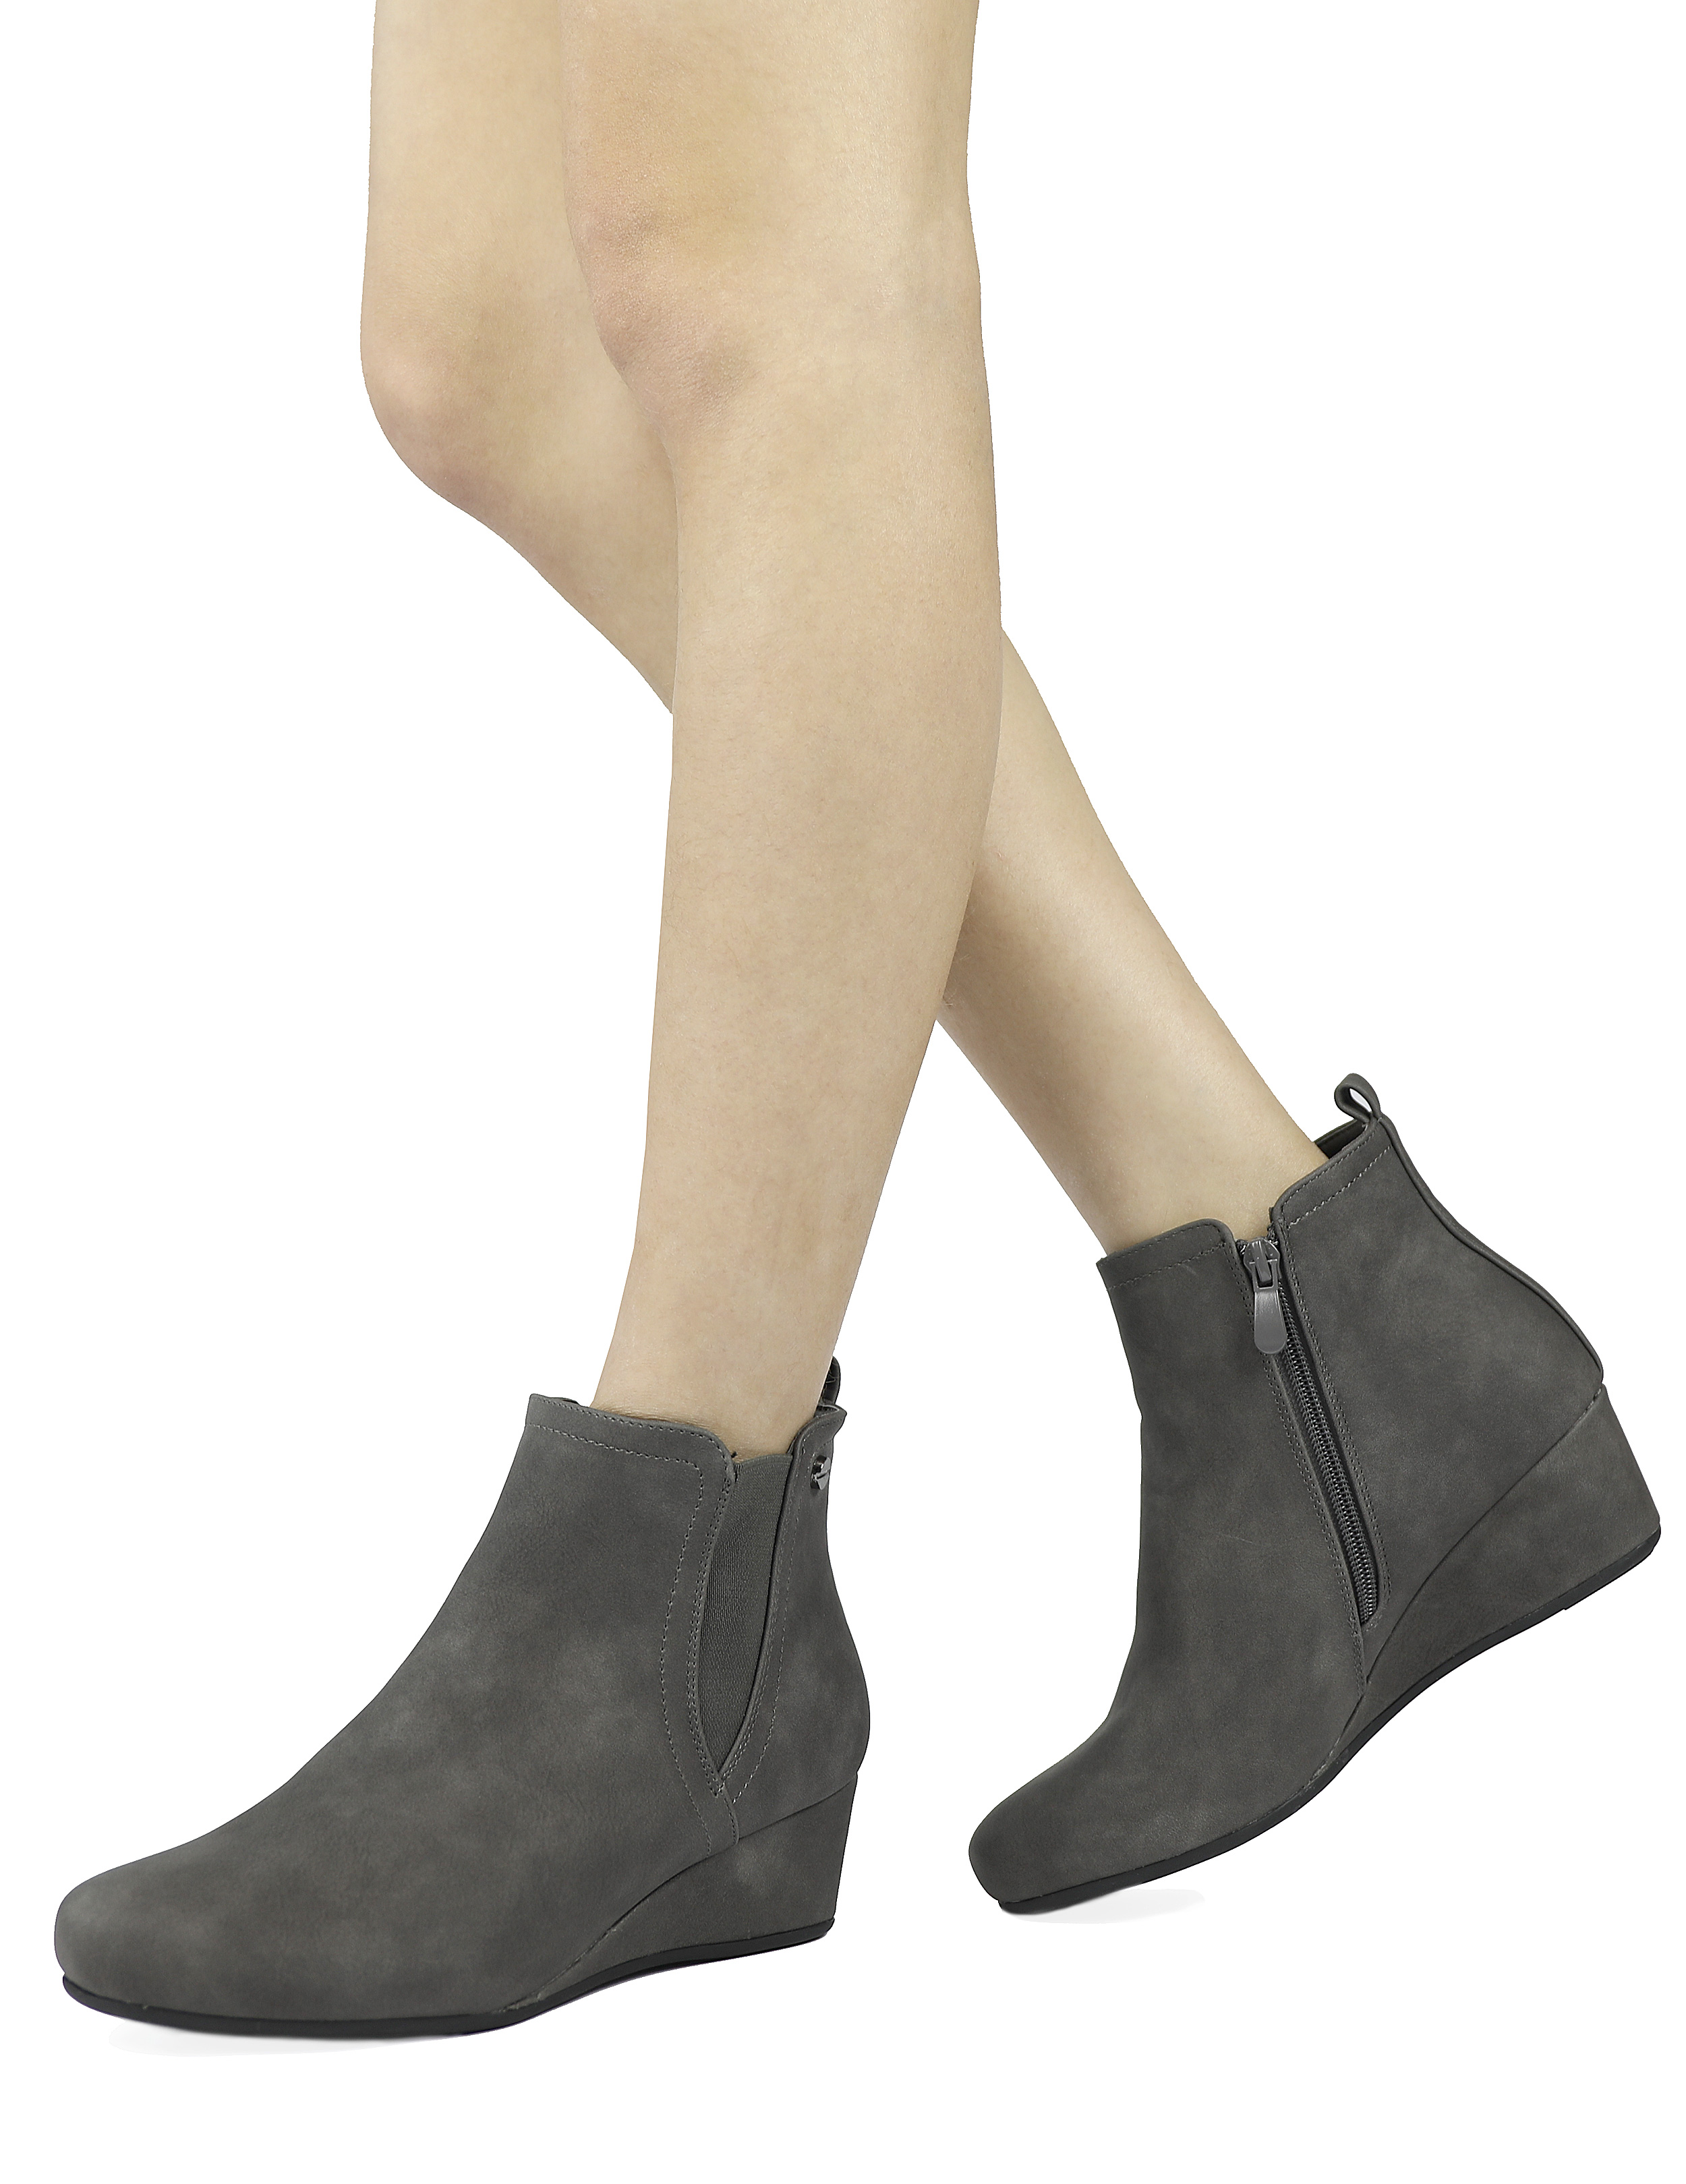 DREAM-PAIRS-Women-039-s-New-Zoie-Low-Wedge-Heel-Lined-zipper-Ankle-Boots-Multi-color